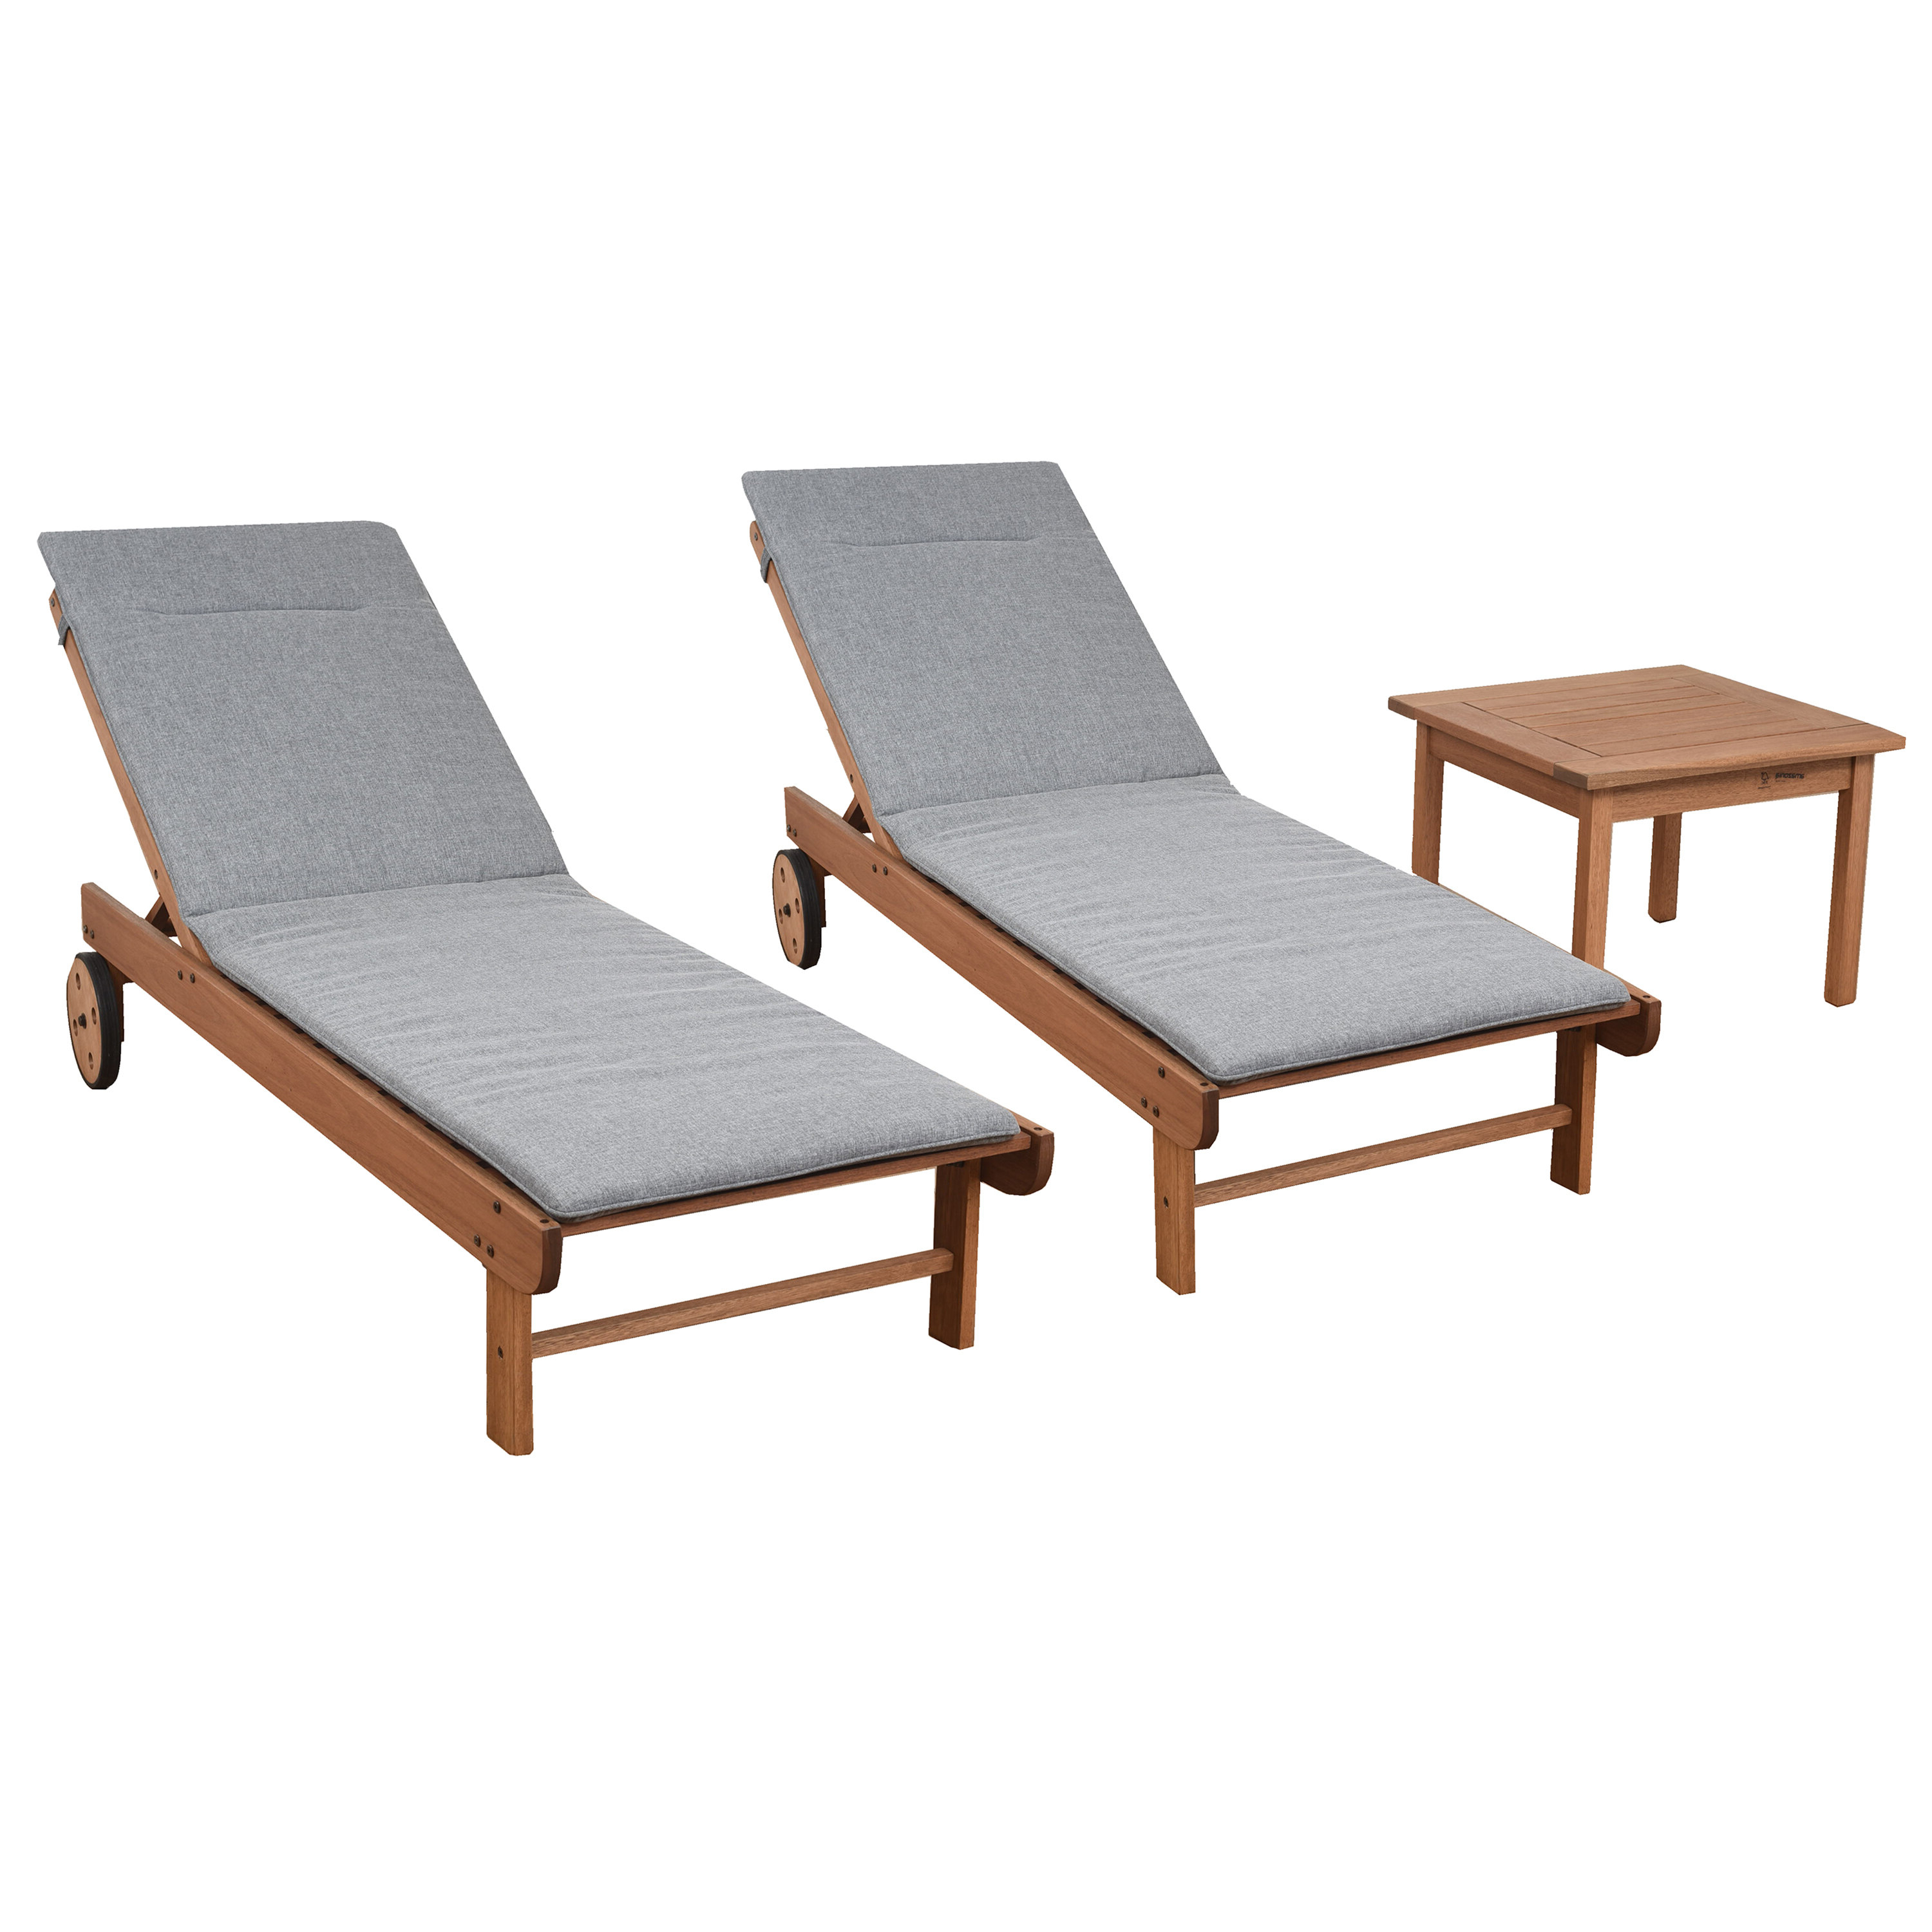 Brighton Gray Cushion Patio 3 Piece Single Reclining Chaise Lounge Set With Table Throughout Most Recently Released 3 Piece Patio Lounger Sets (View 11 of 25)